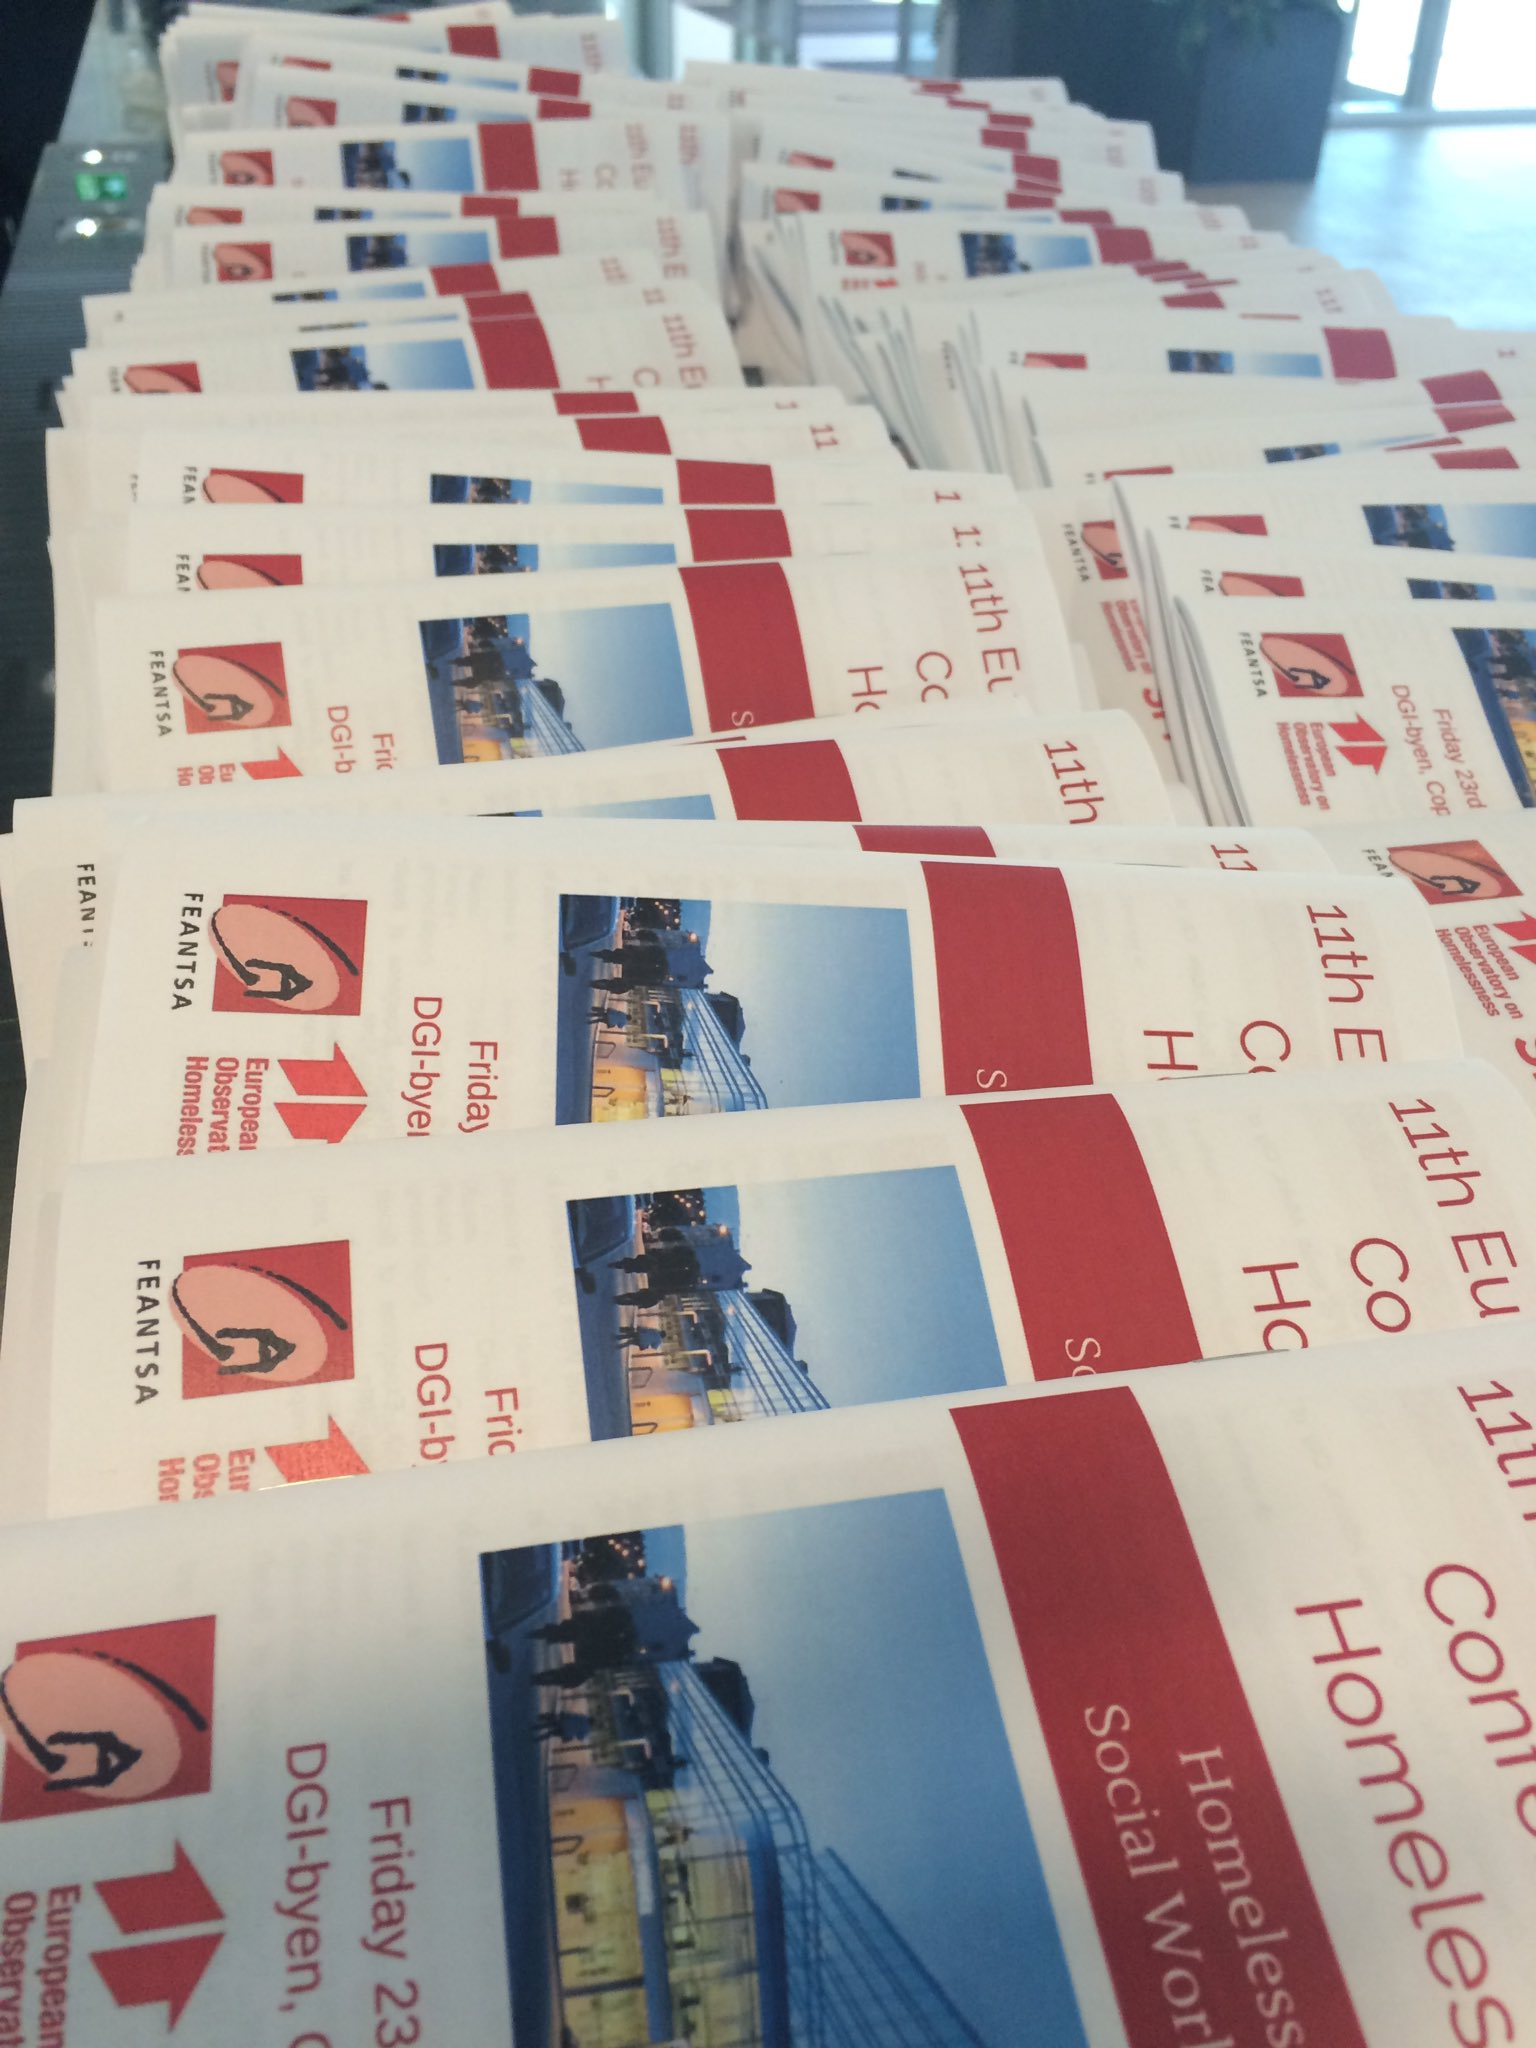 Ready and waiting for participants to arrive for tomorrow's European Research Conference on Homelessness! #eoh2016 https://t.co/Itcgt3uAkl